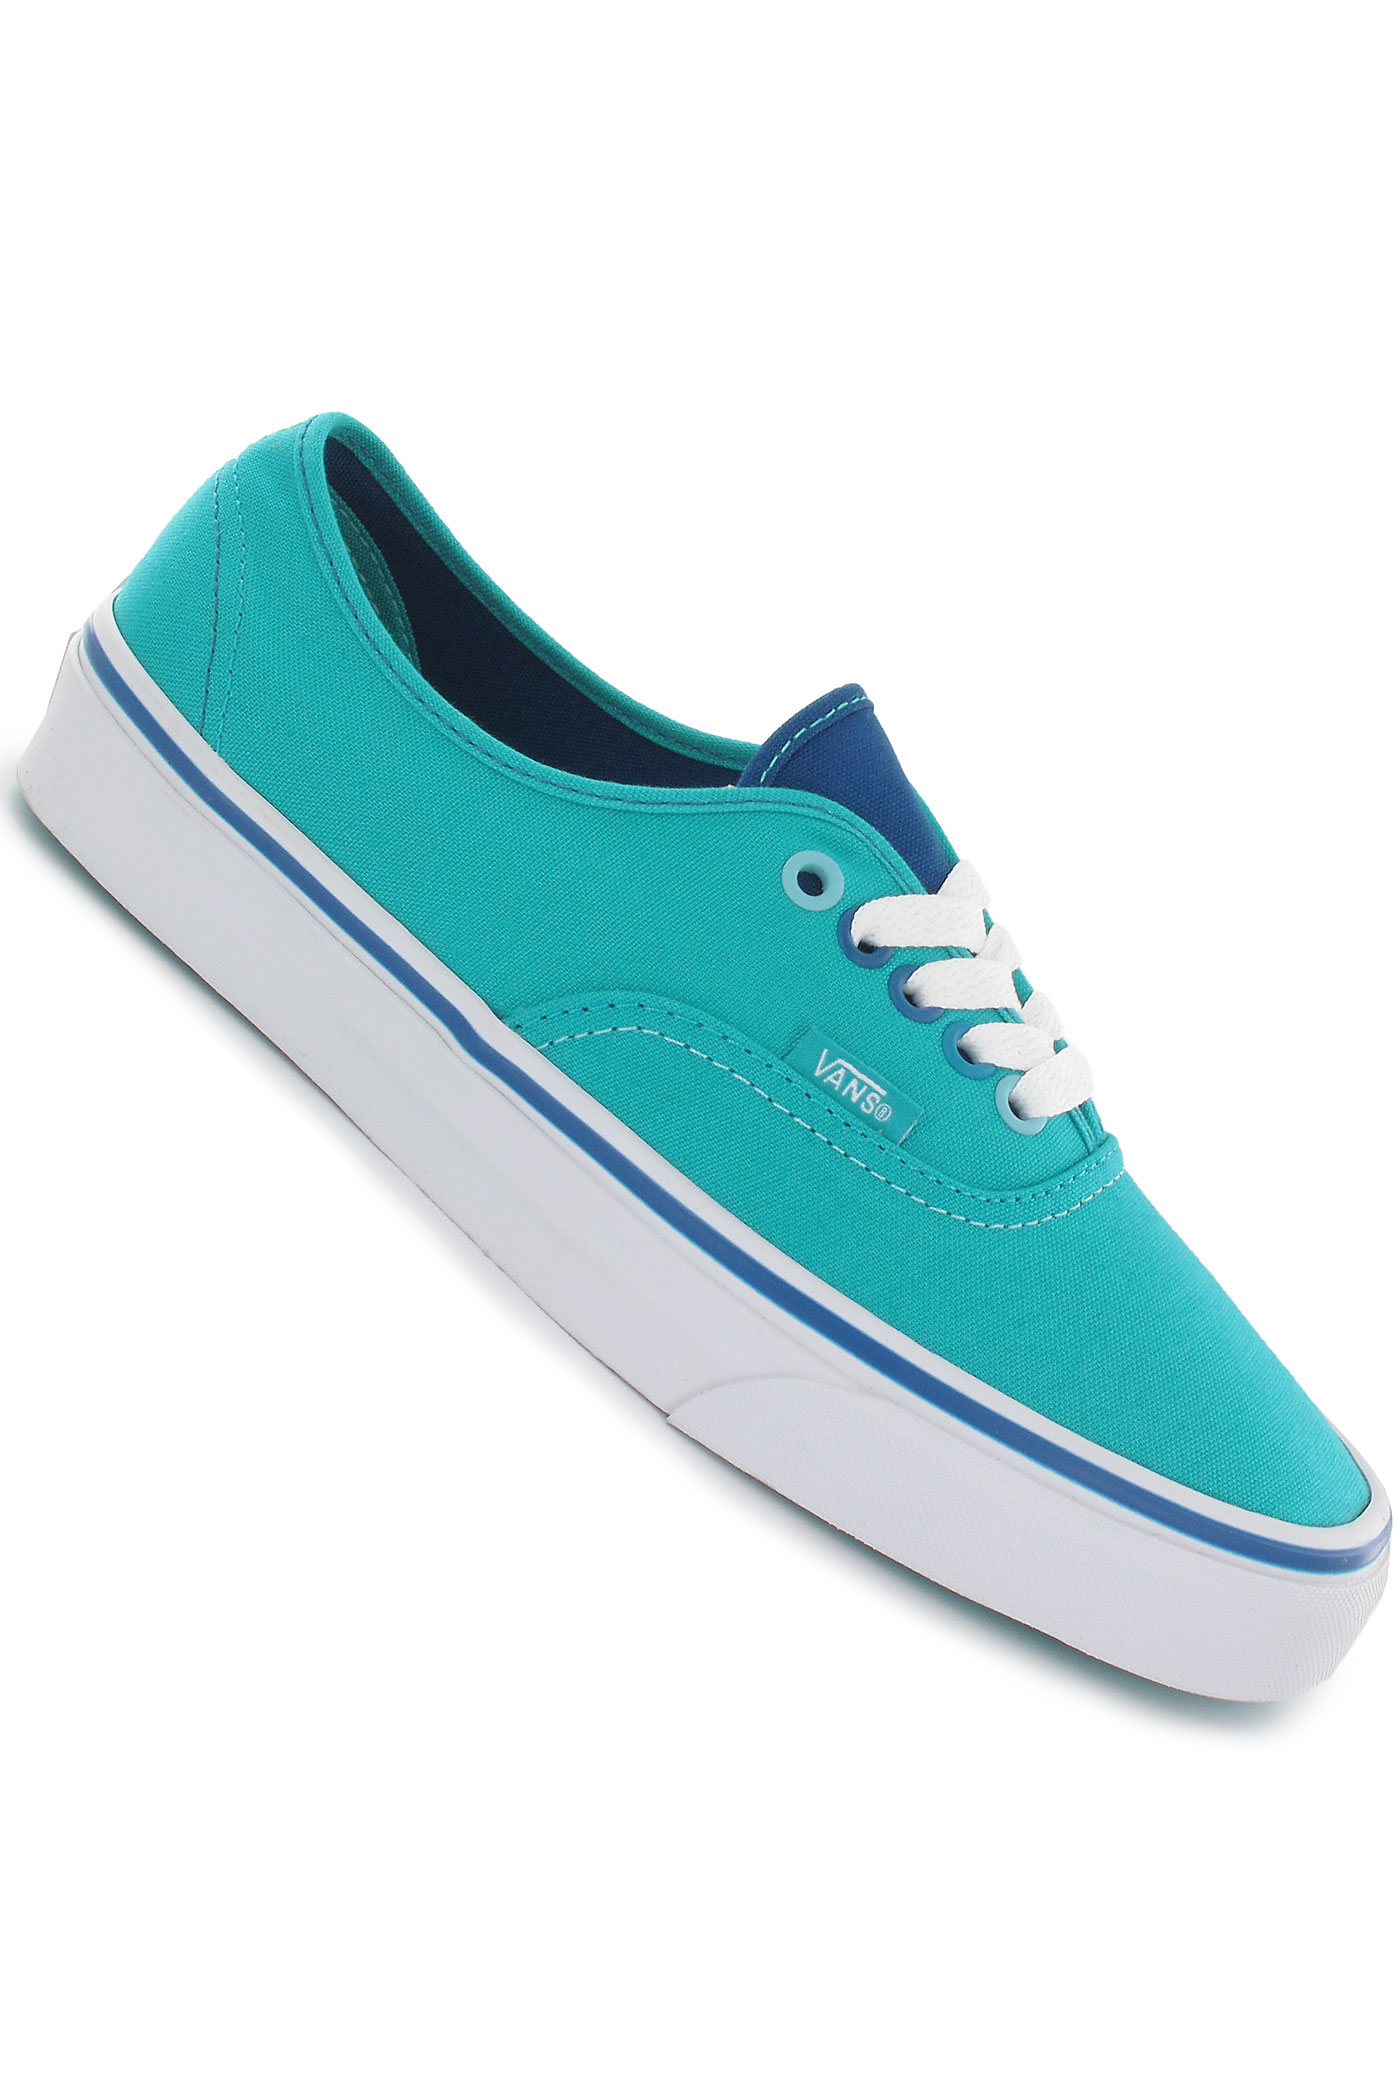 Vans Authentic Shoe girls (peacock blue turkish sea) buy at ...